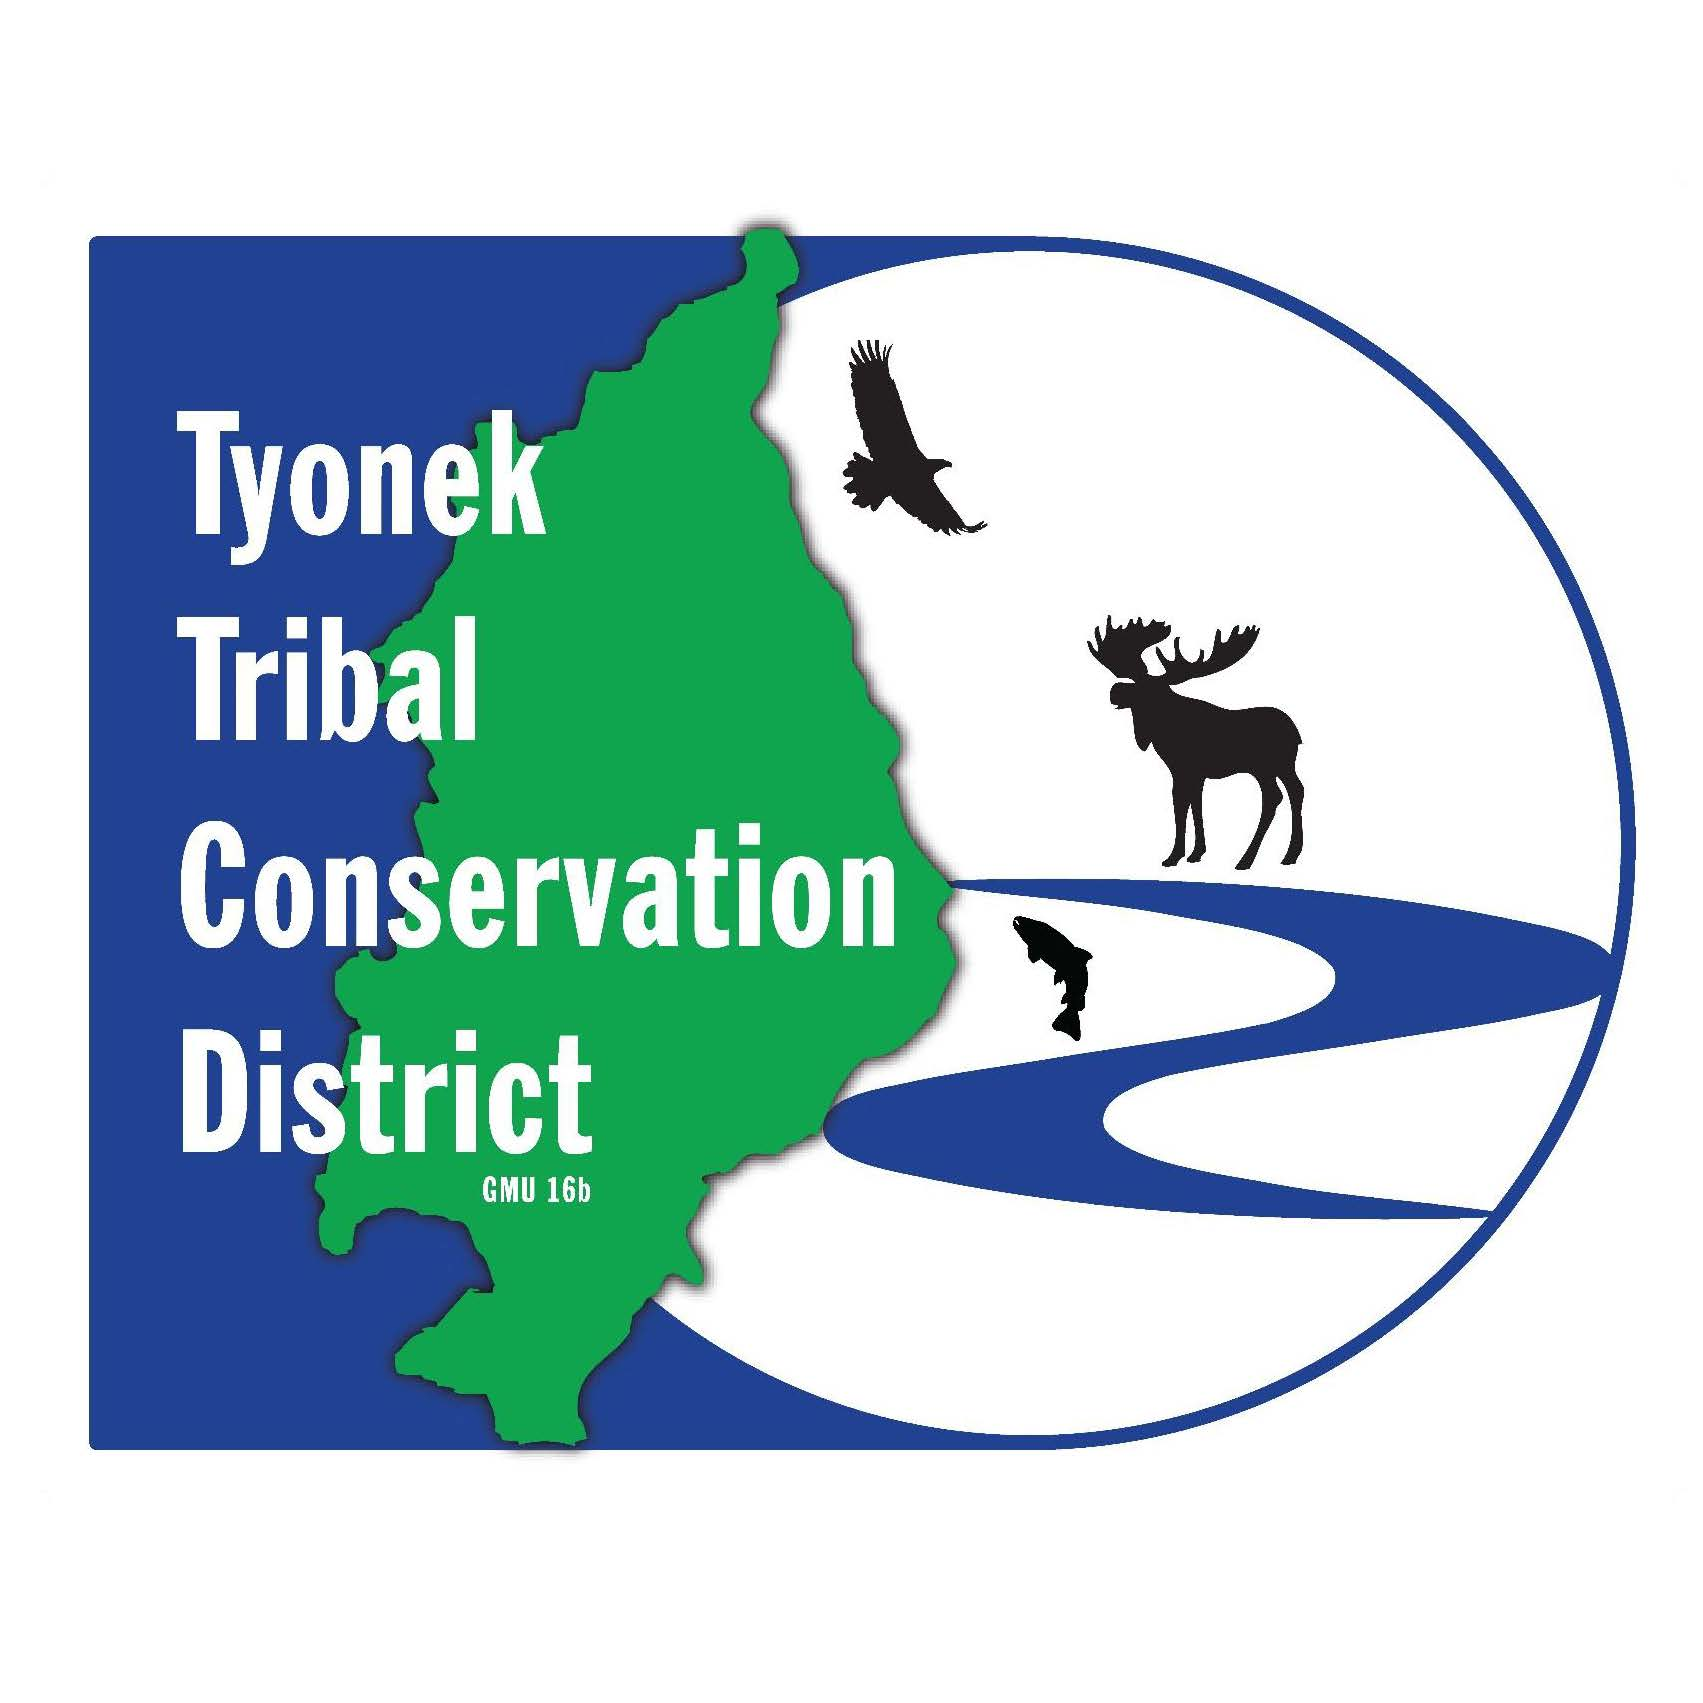 Tyonek Tribal Conservation District logo